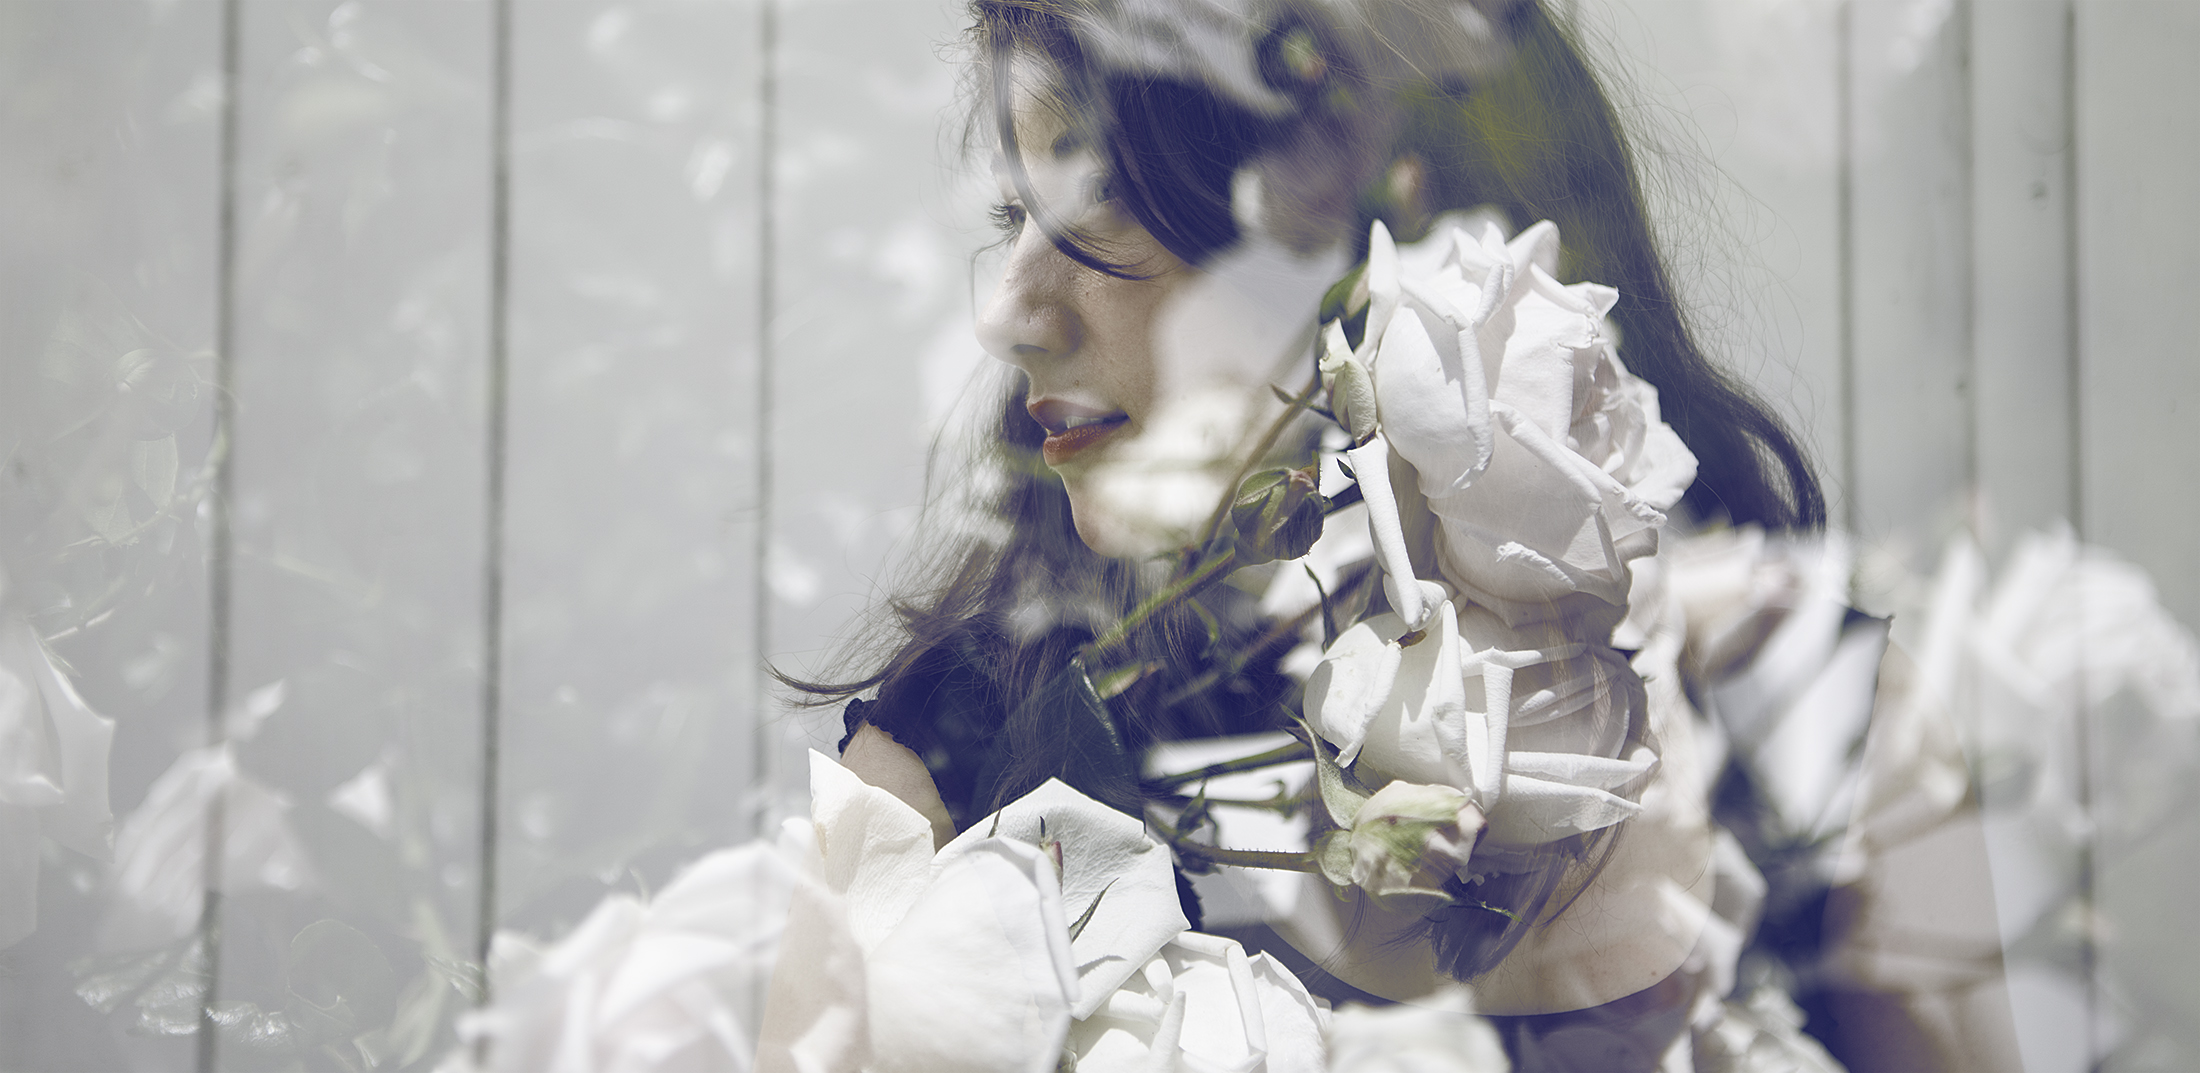 That fantastic moment when you figure out your camera can do proper double exposures, and then all you can find are white roses.